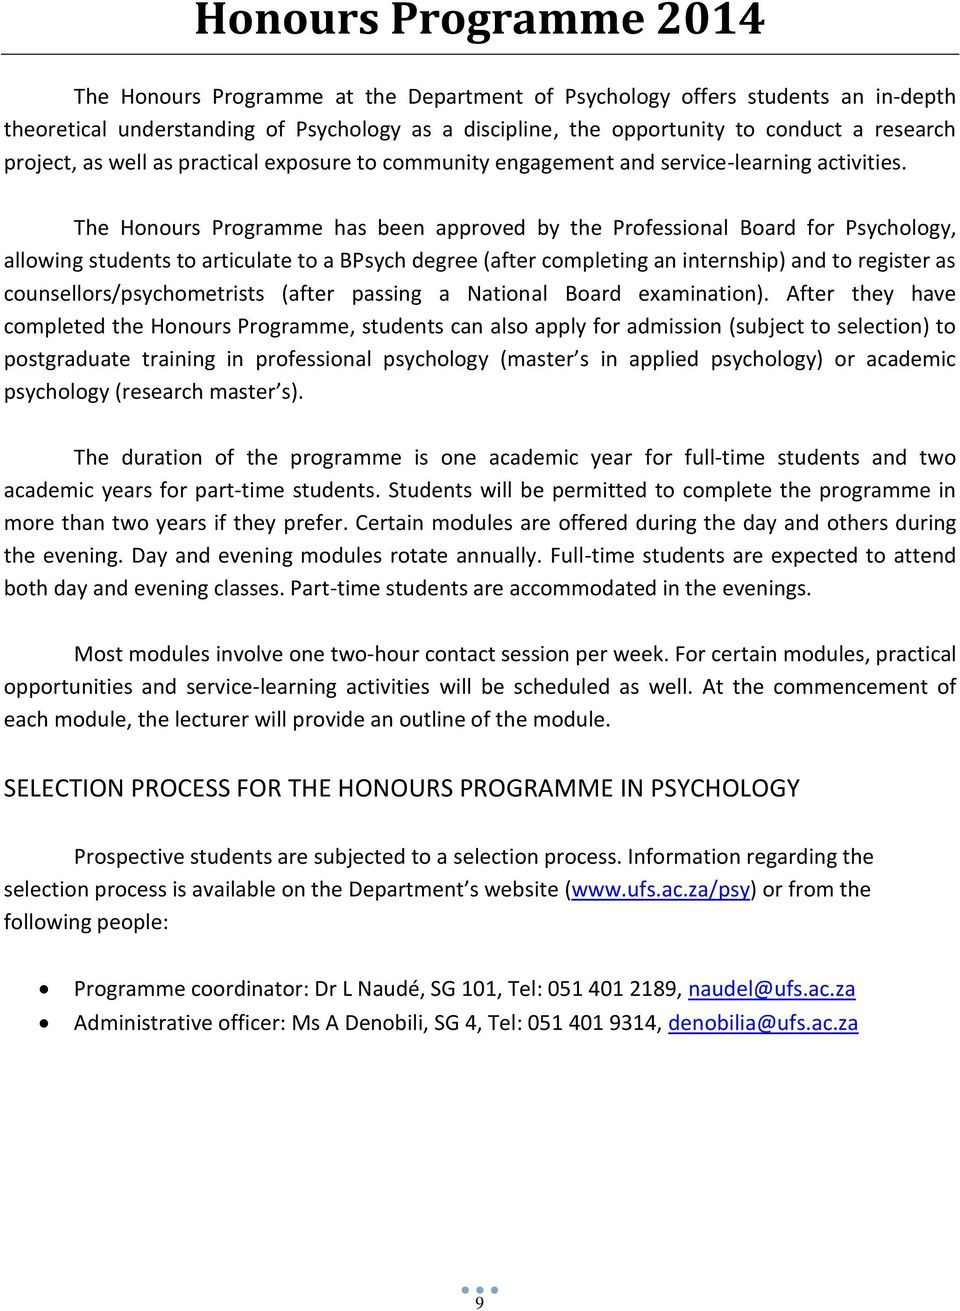 The Honours Programme has been approved by the Professional Board for Psychology, allowing students to articulate to a BPsych degree (after completing an internship) and to register as